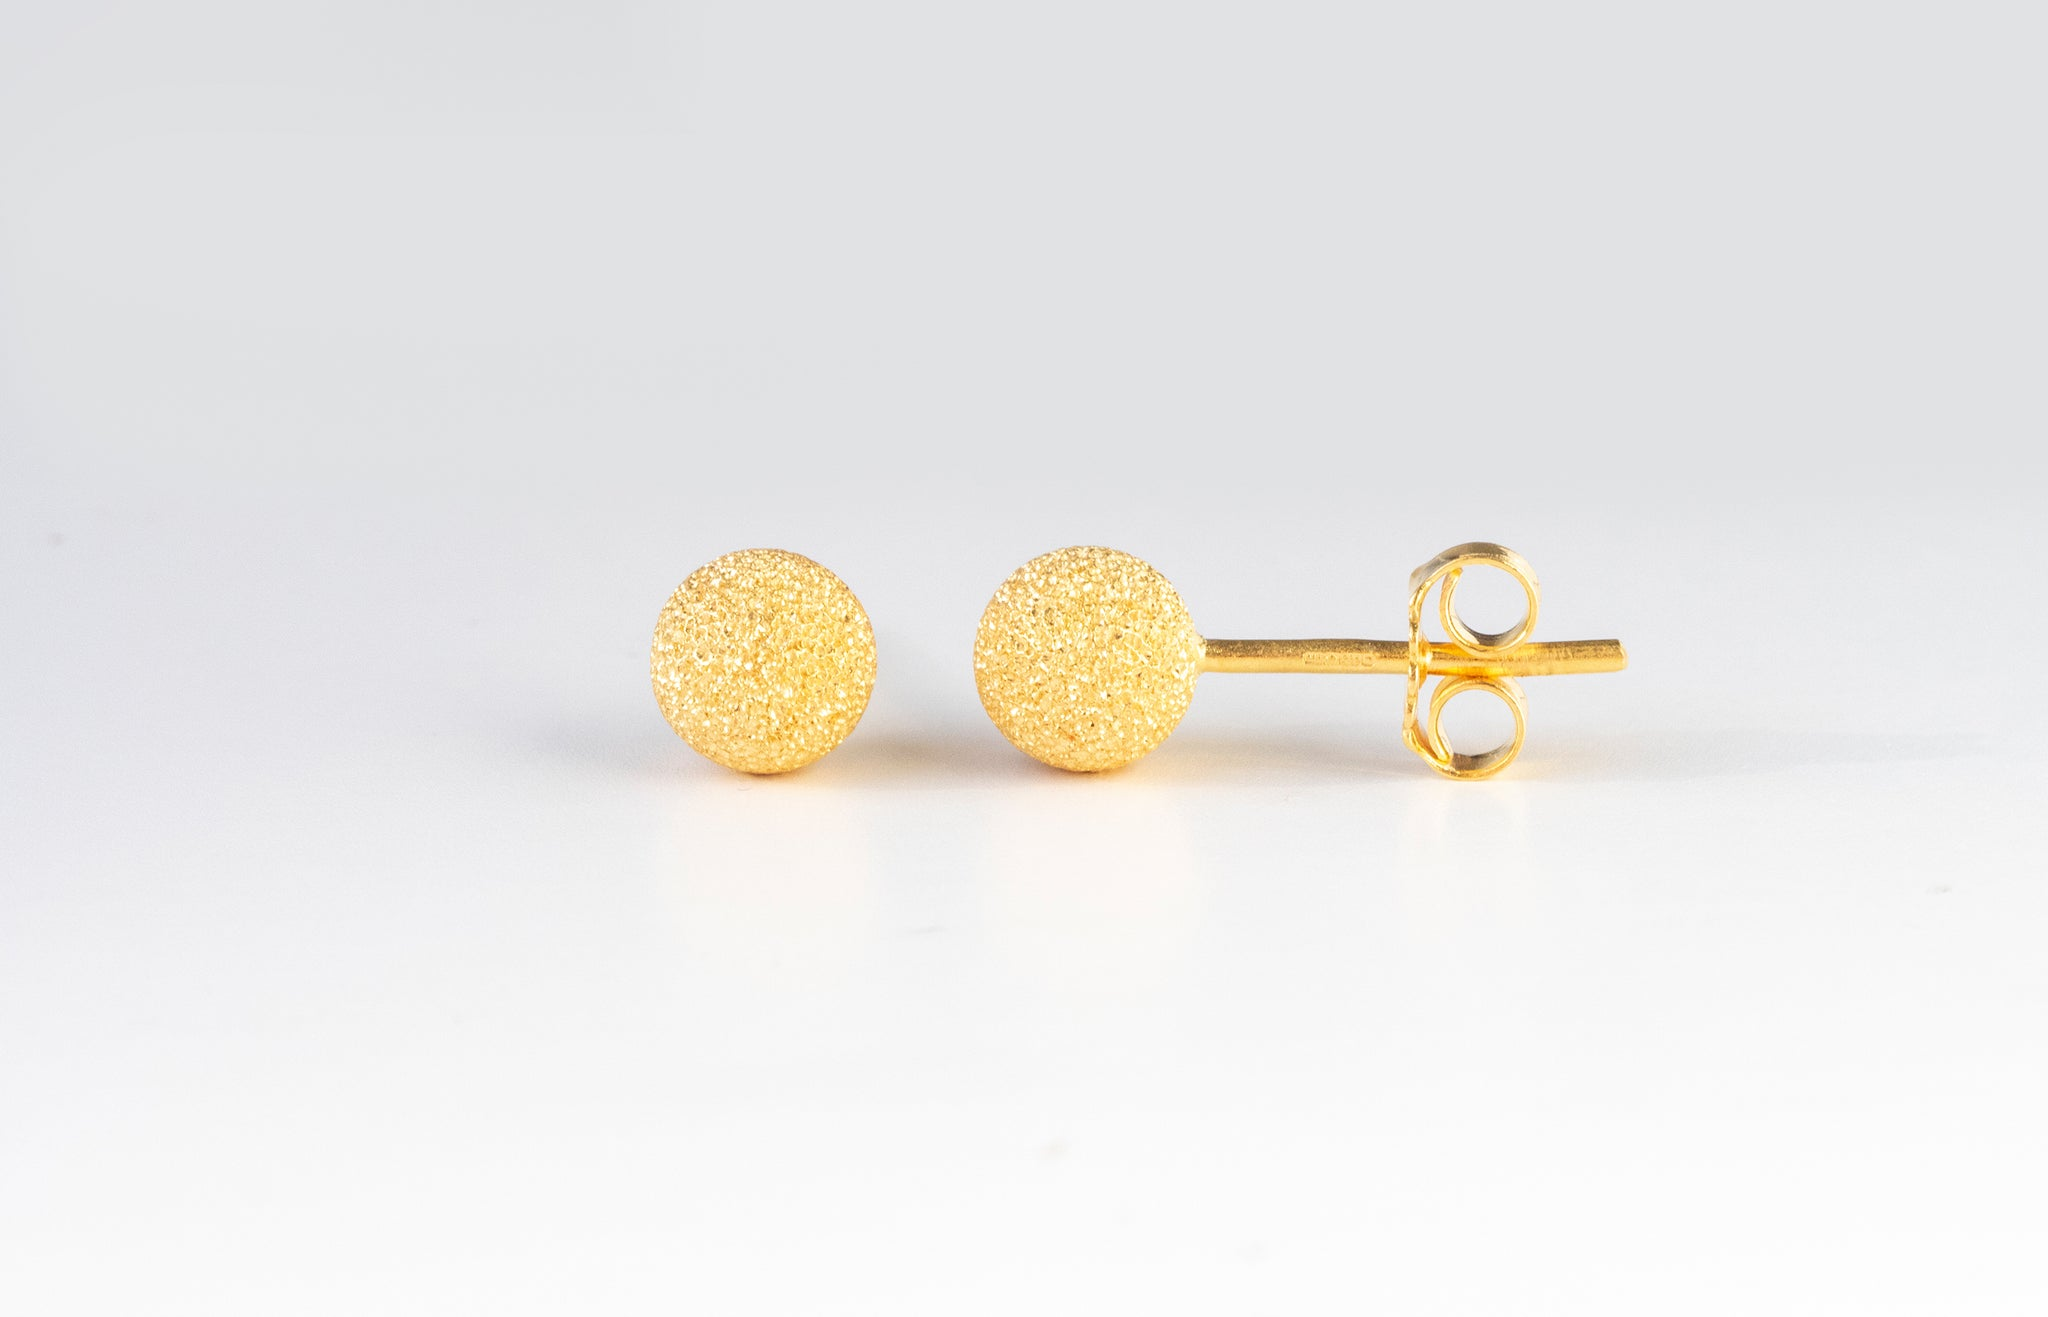 22ct Gold Diamond Cut Stud Earrings with Push Backs (2.4g) E-7765